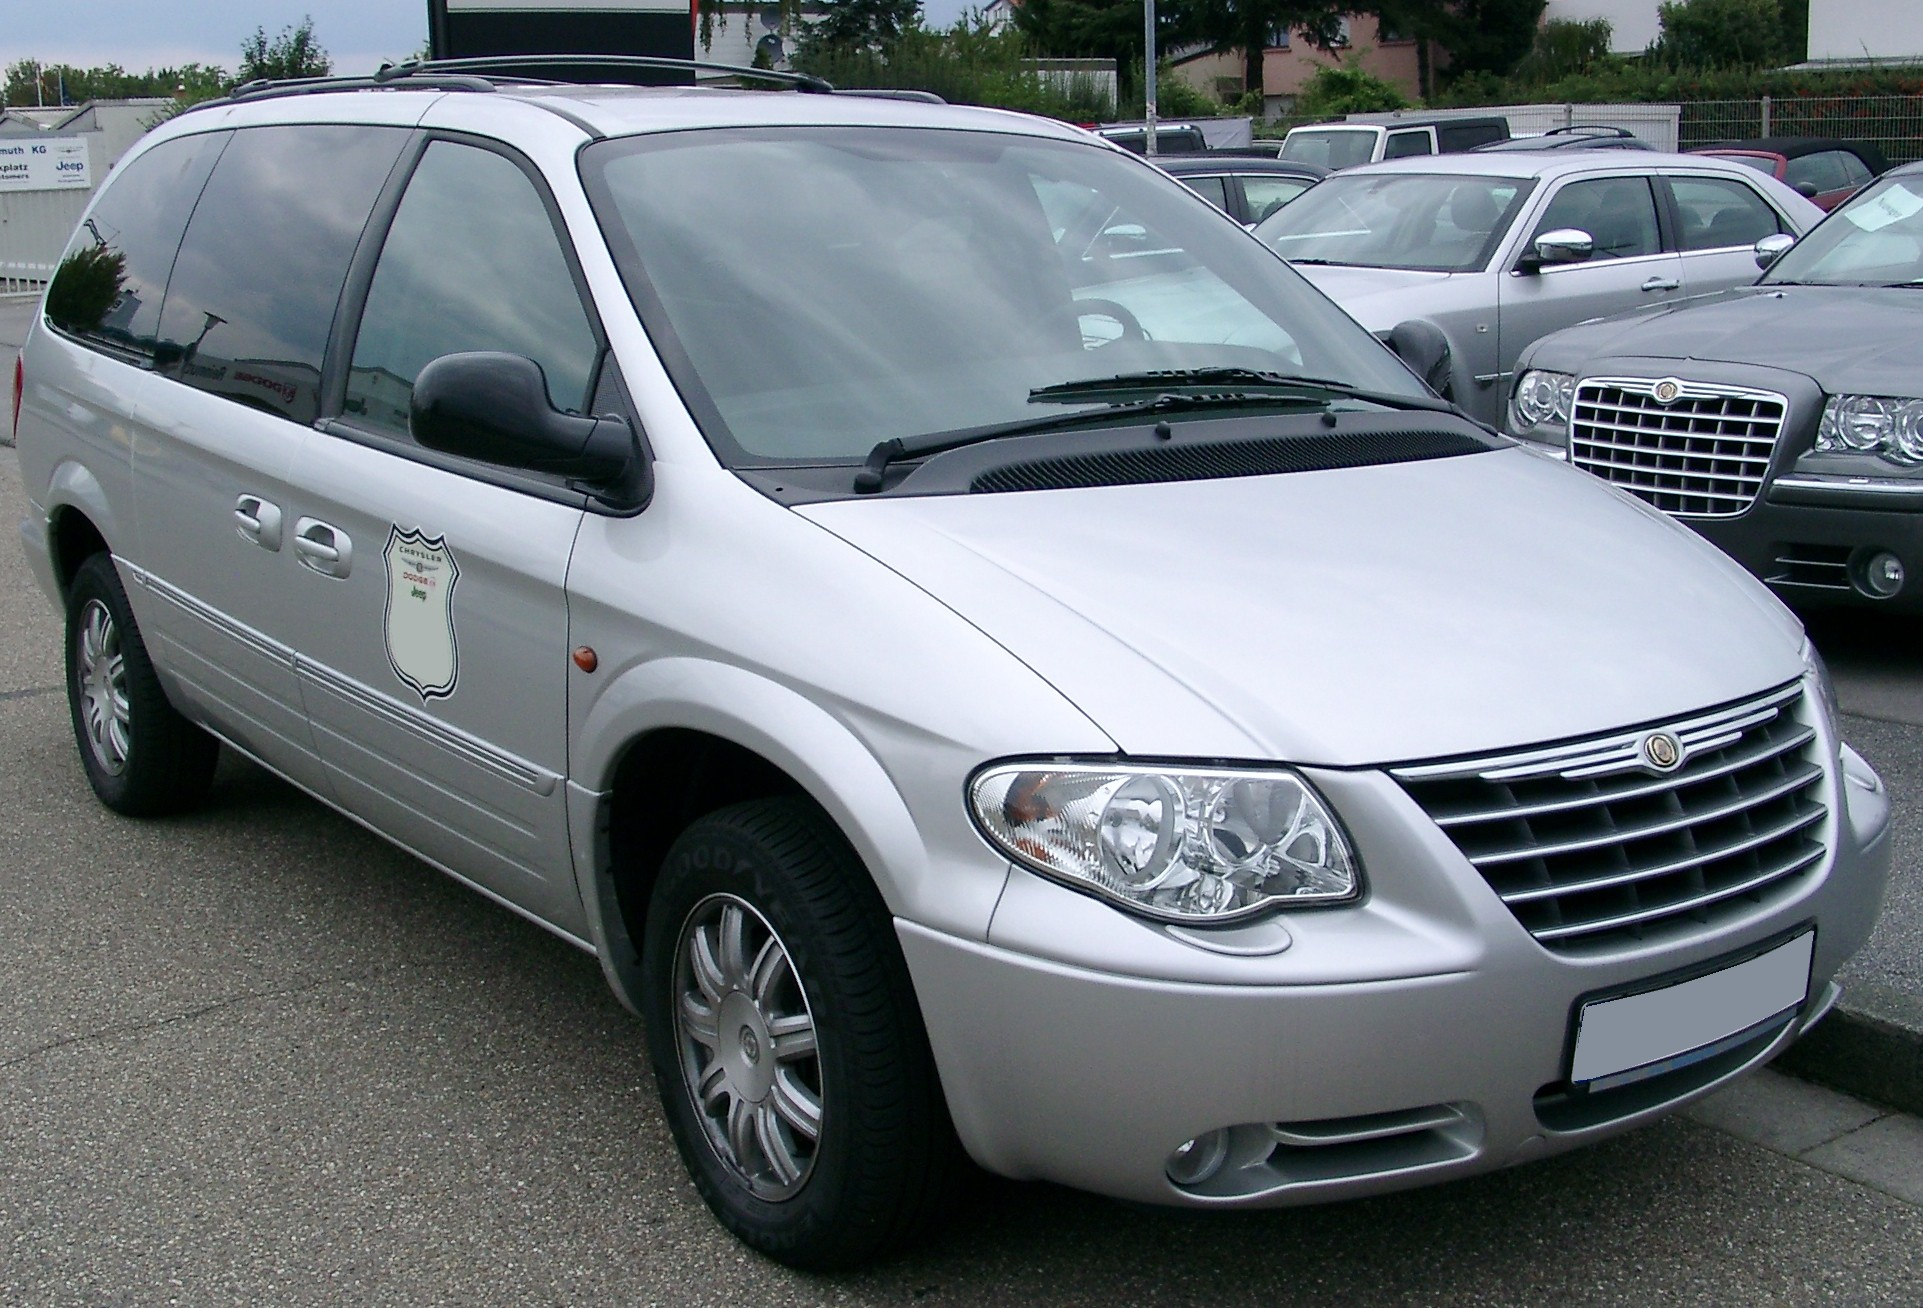 File:Chrysler Grand Voyager front 20070902.jpg - Wikipedia, the free ...